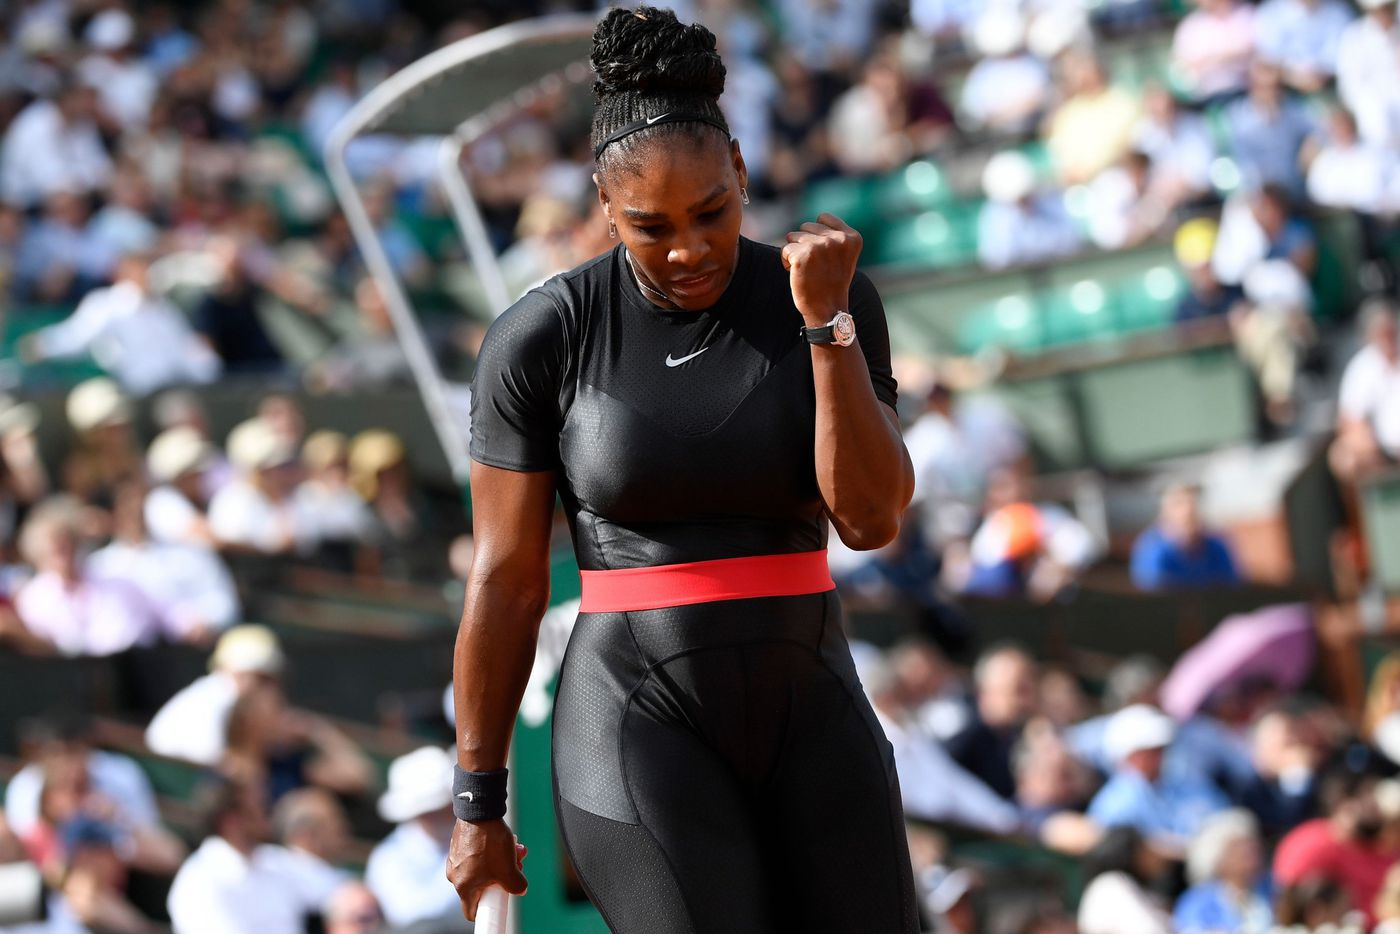 French Open: Serena - Sharapova 'Rivalry' - the Weakest Narrative